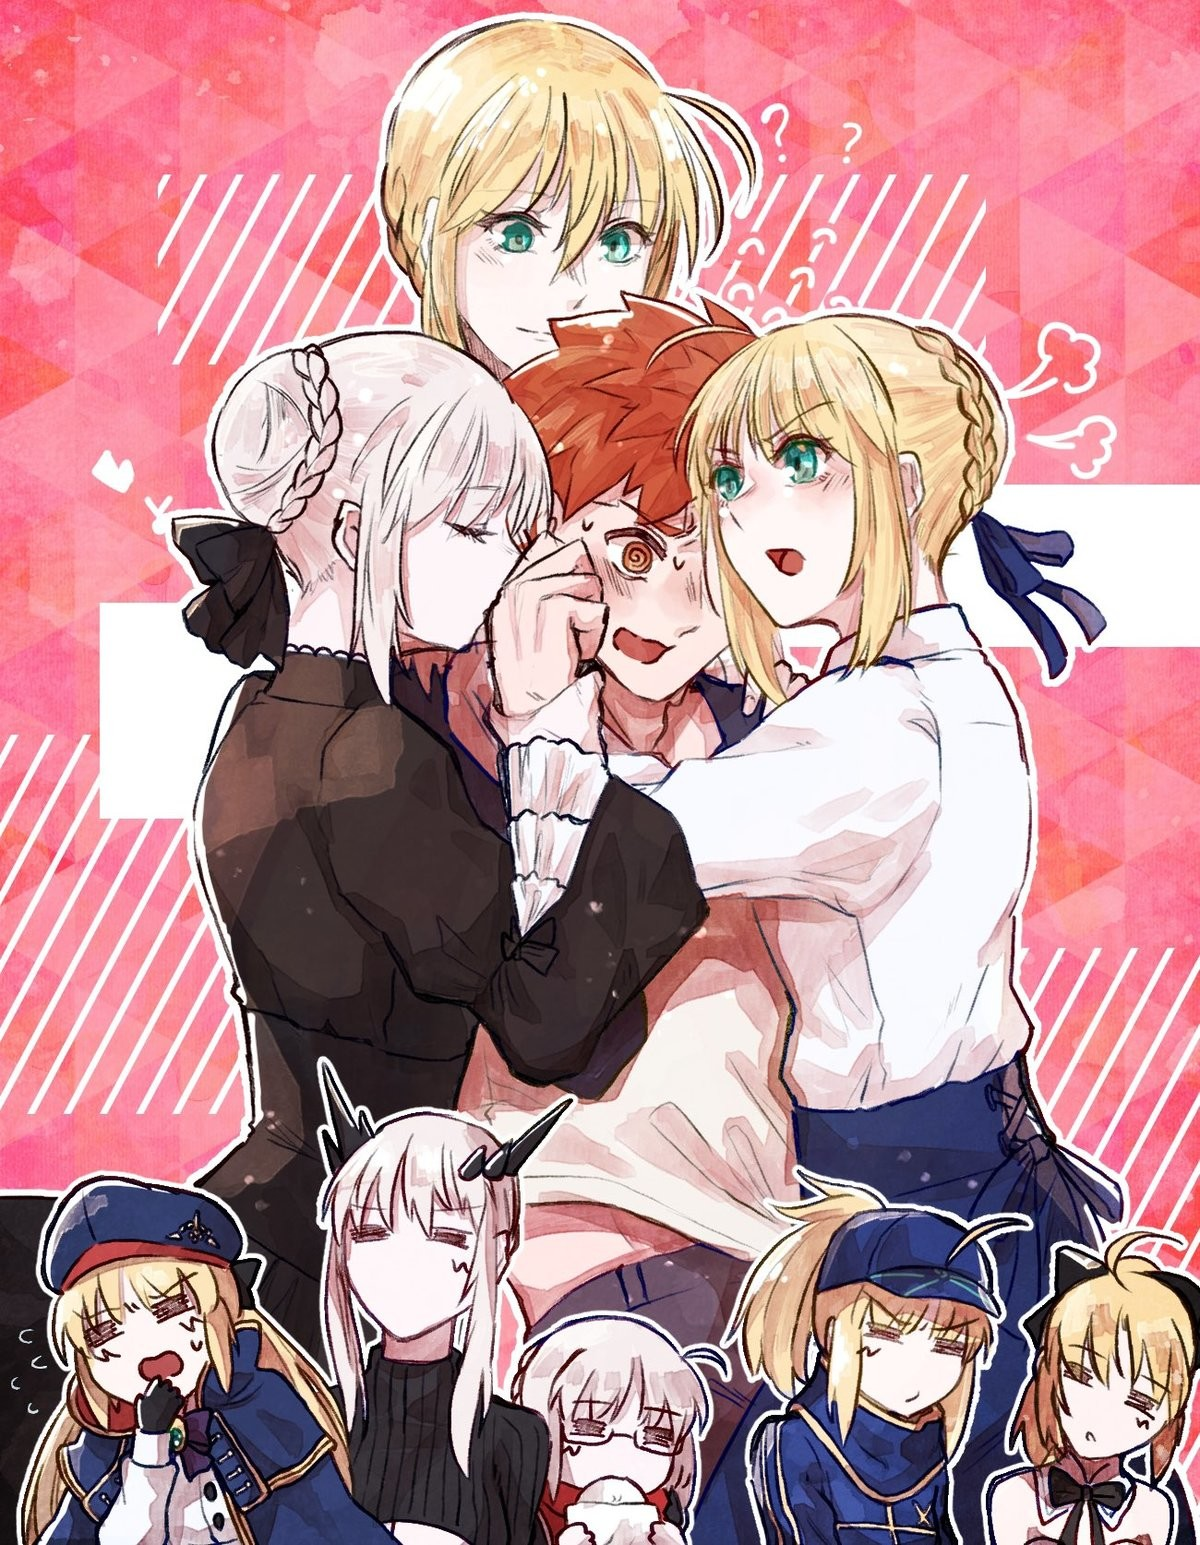 Garden of avalon. join list: SeiginoMikata (31 subs)Mention History.. Get your hands off MY ARTORIA.